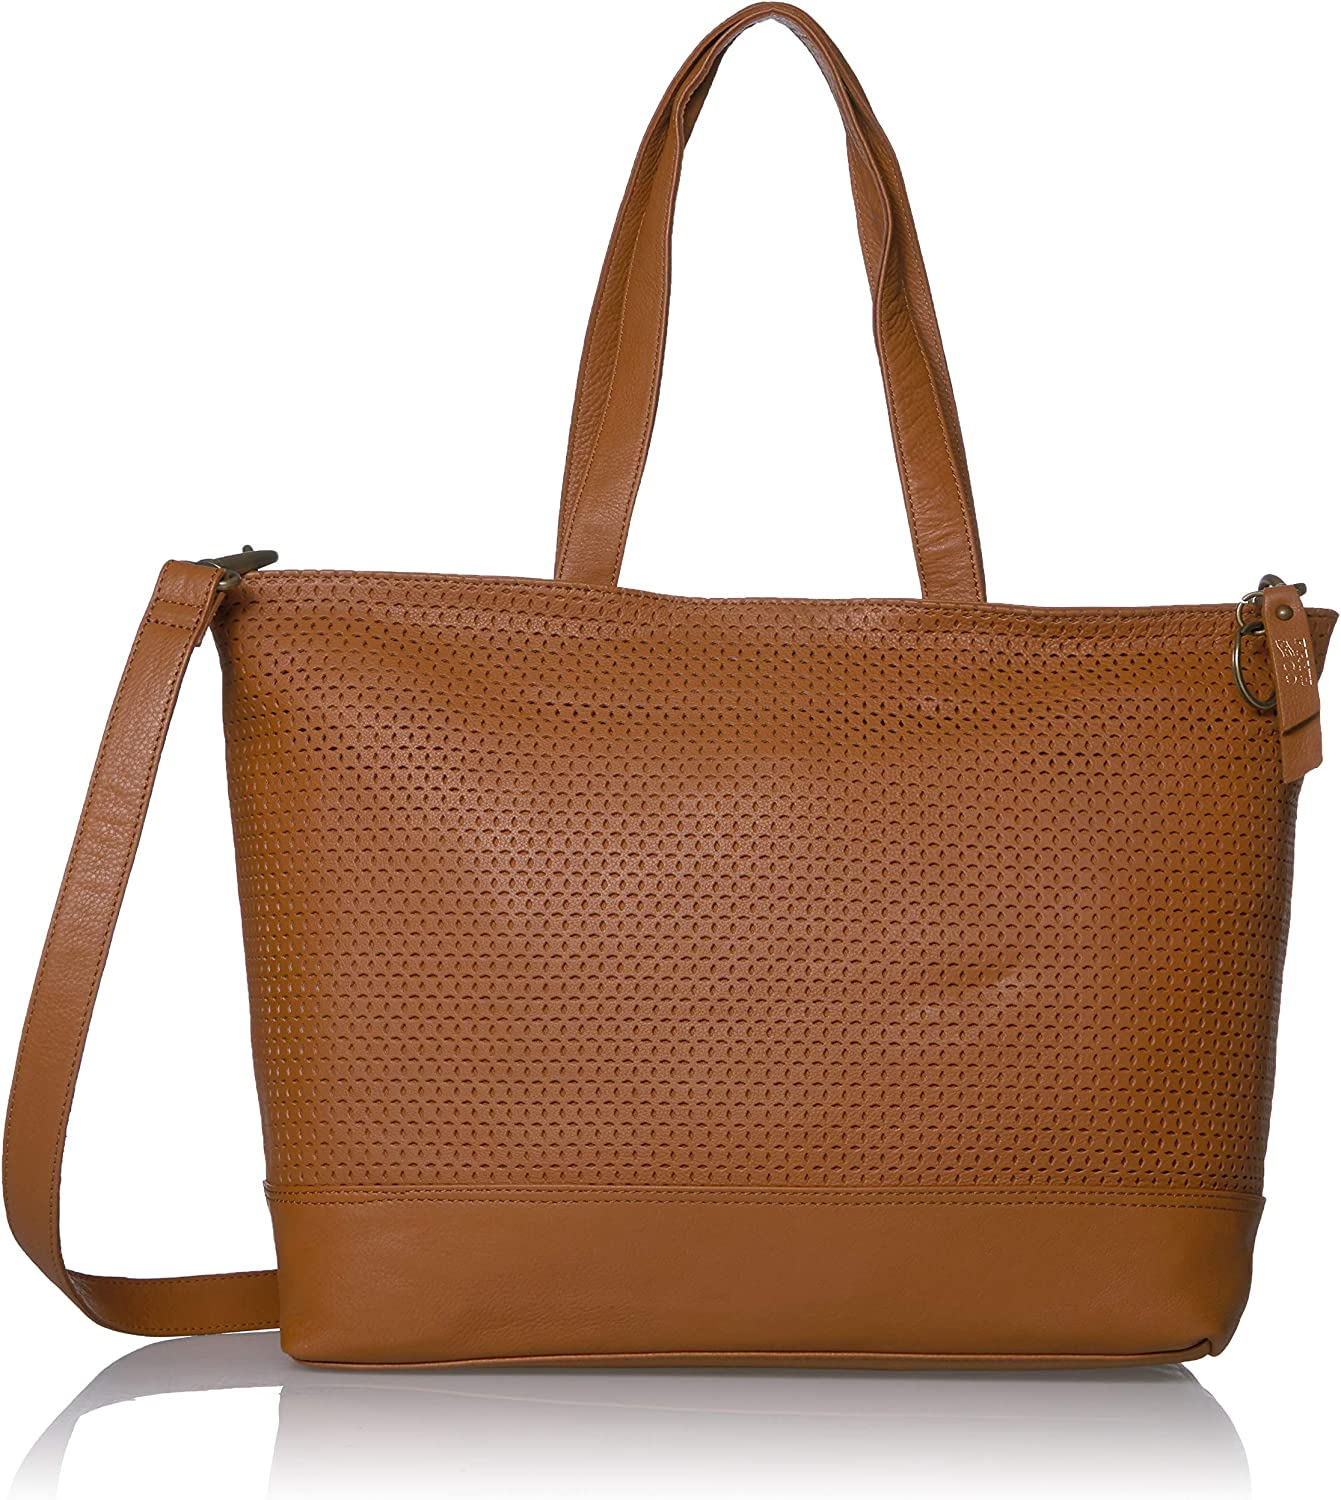 Frye and Co Limited price Handbags Max 49% OFF Anise Tote